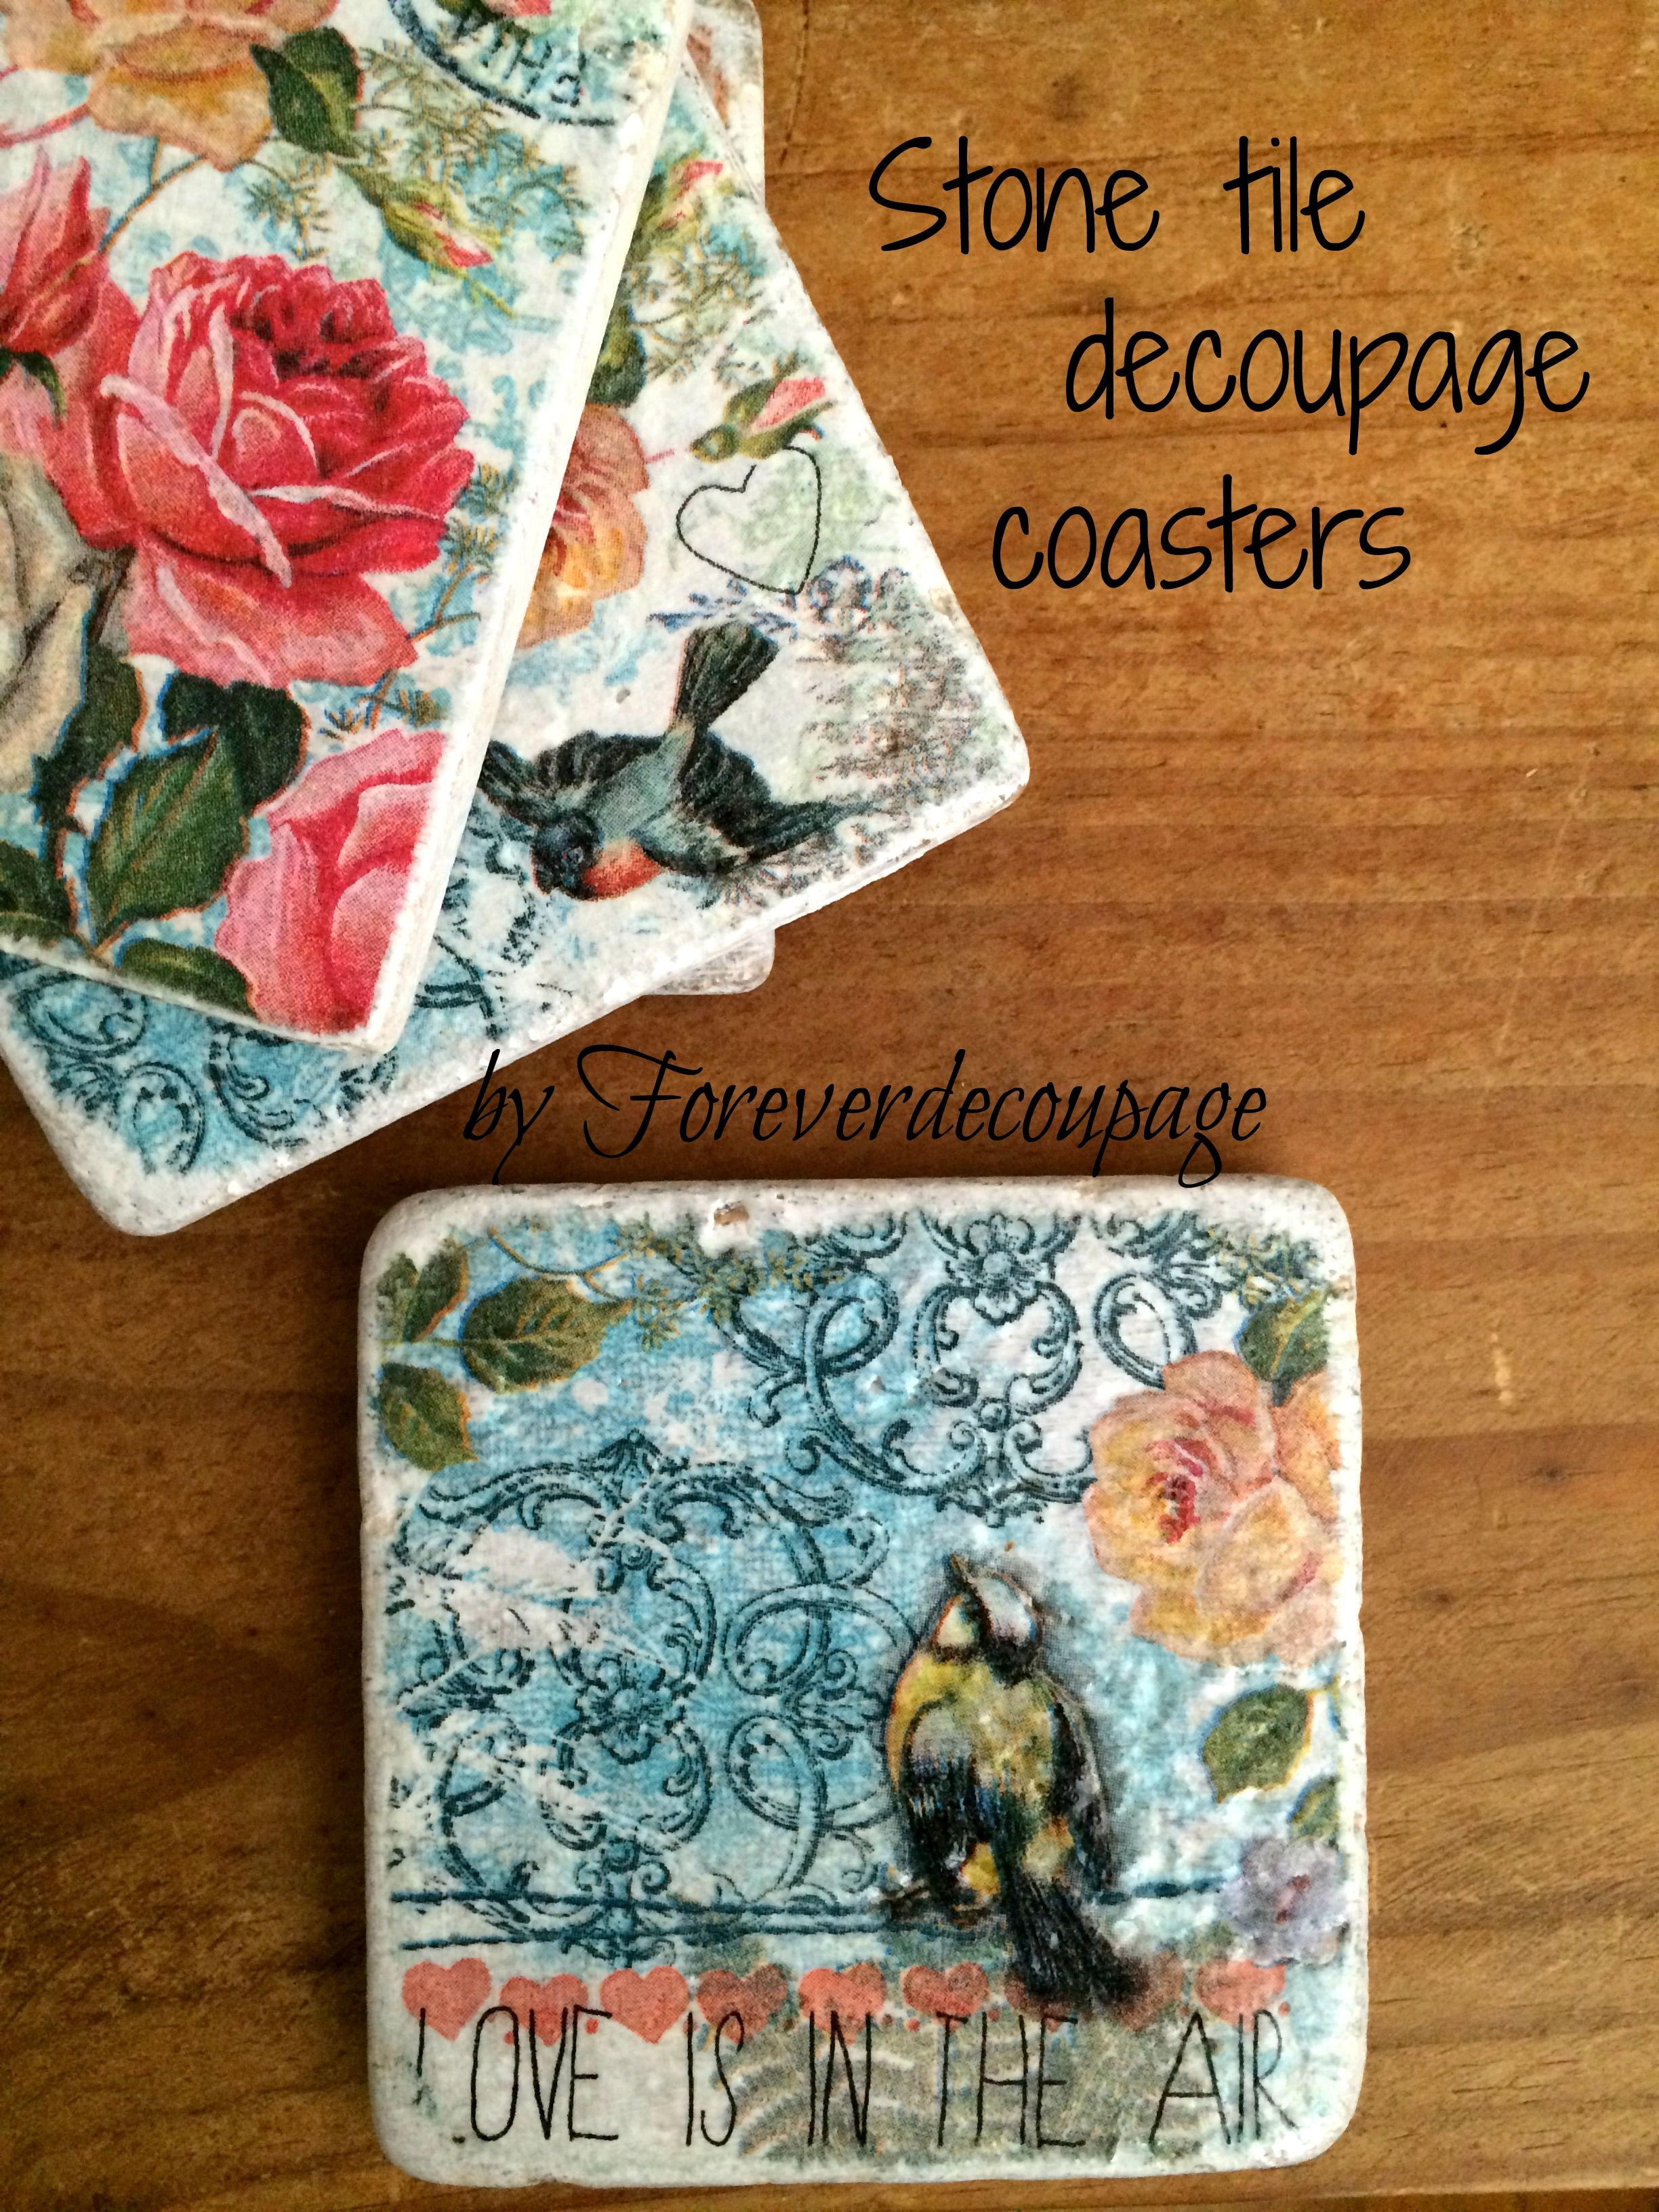 Decoupaged stone tile coasters, vintage roses and birds